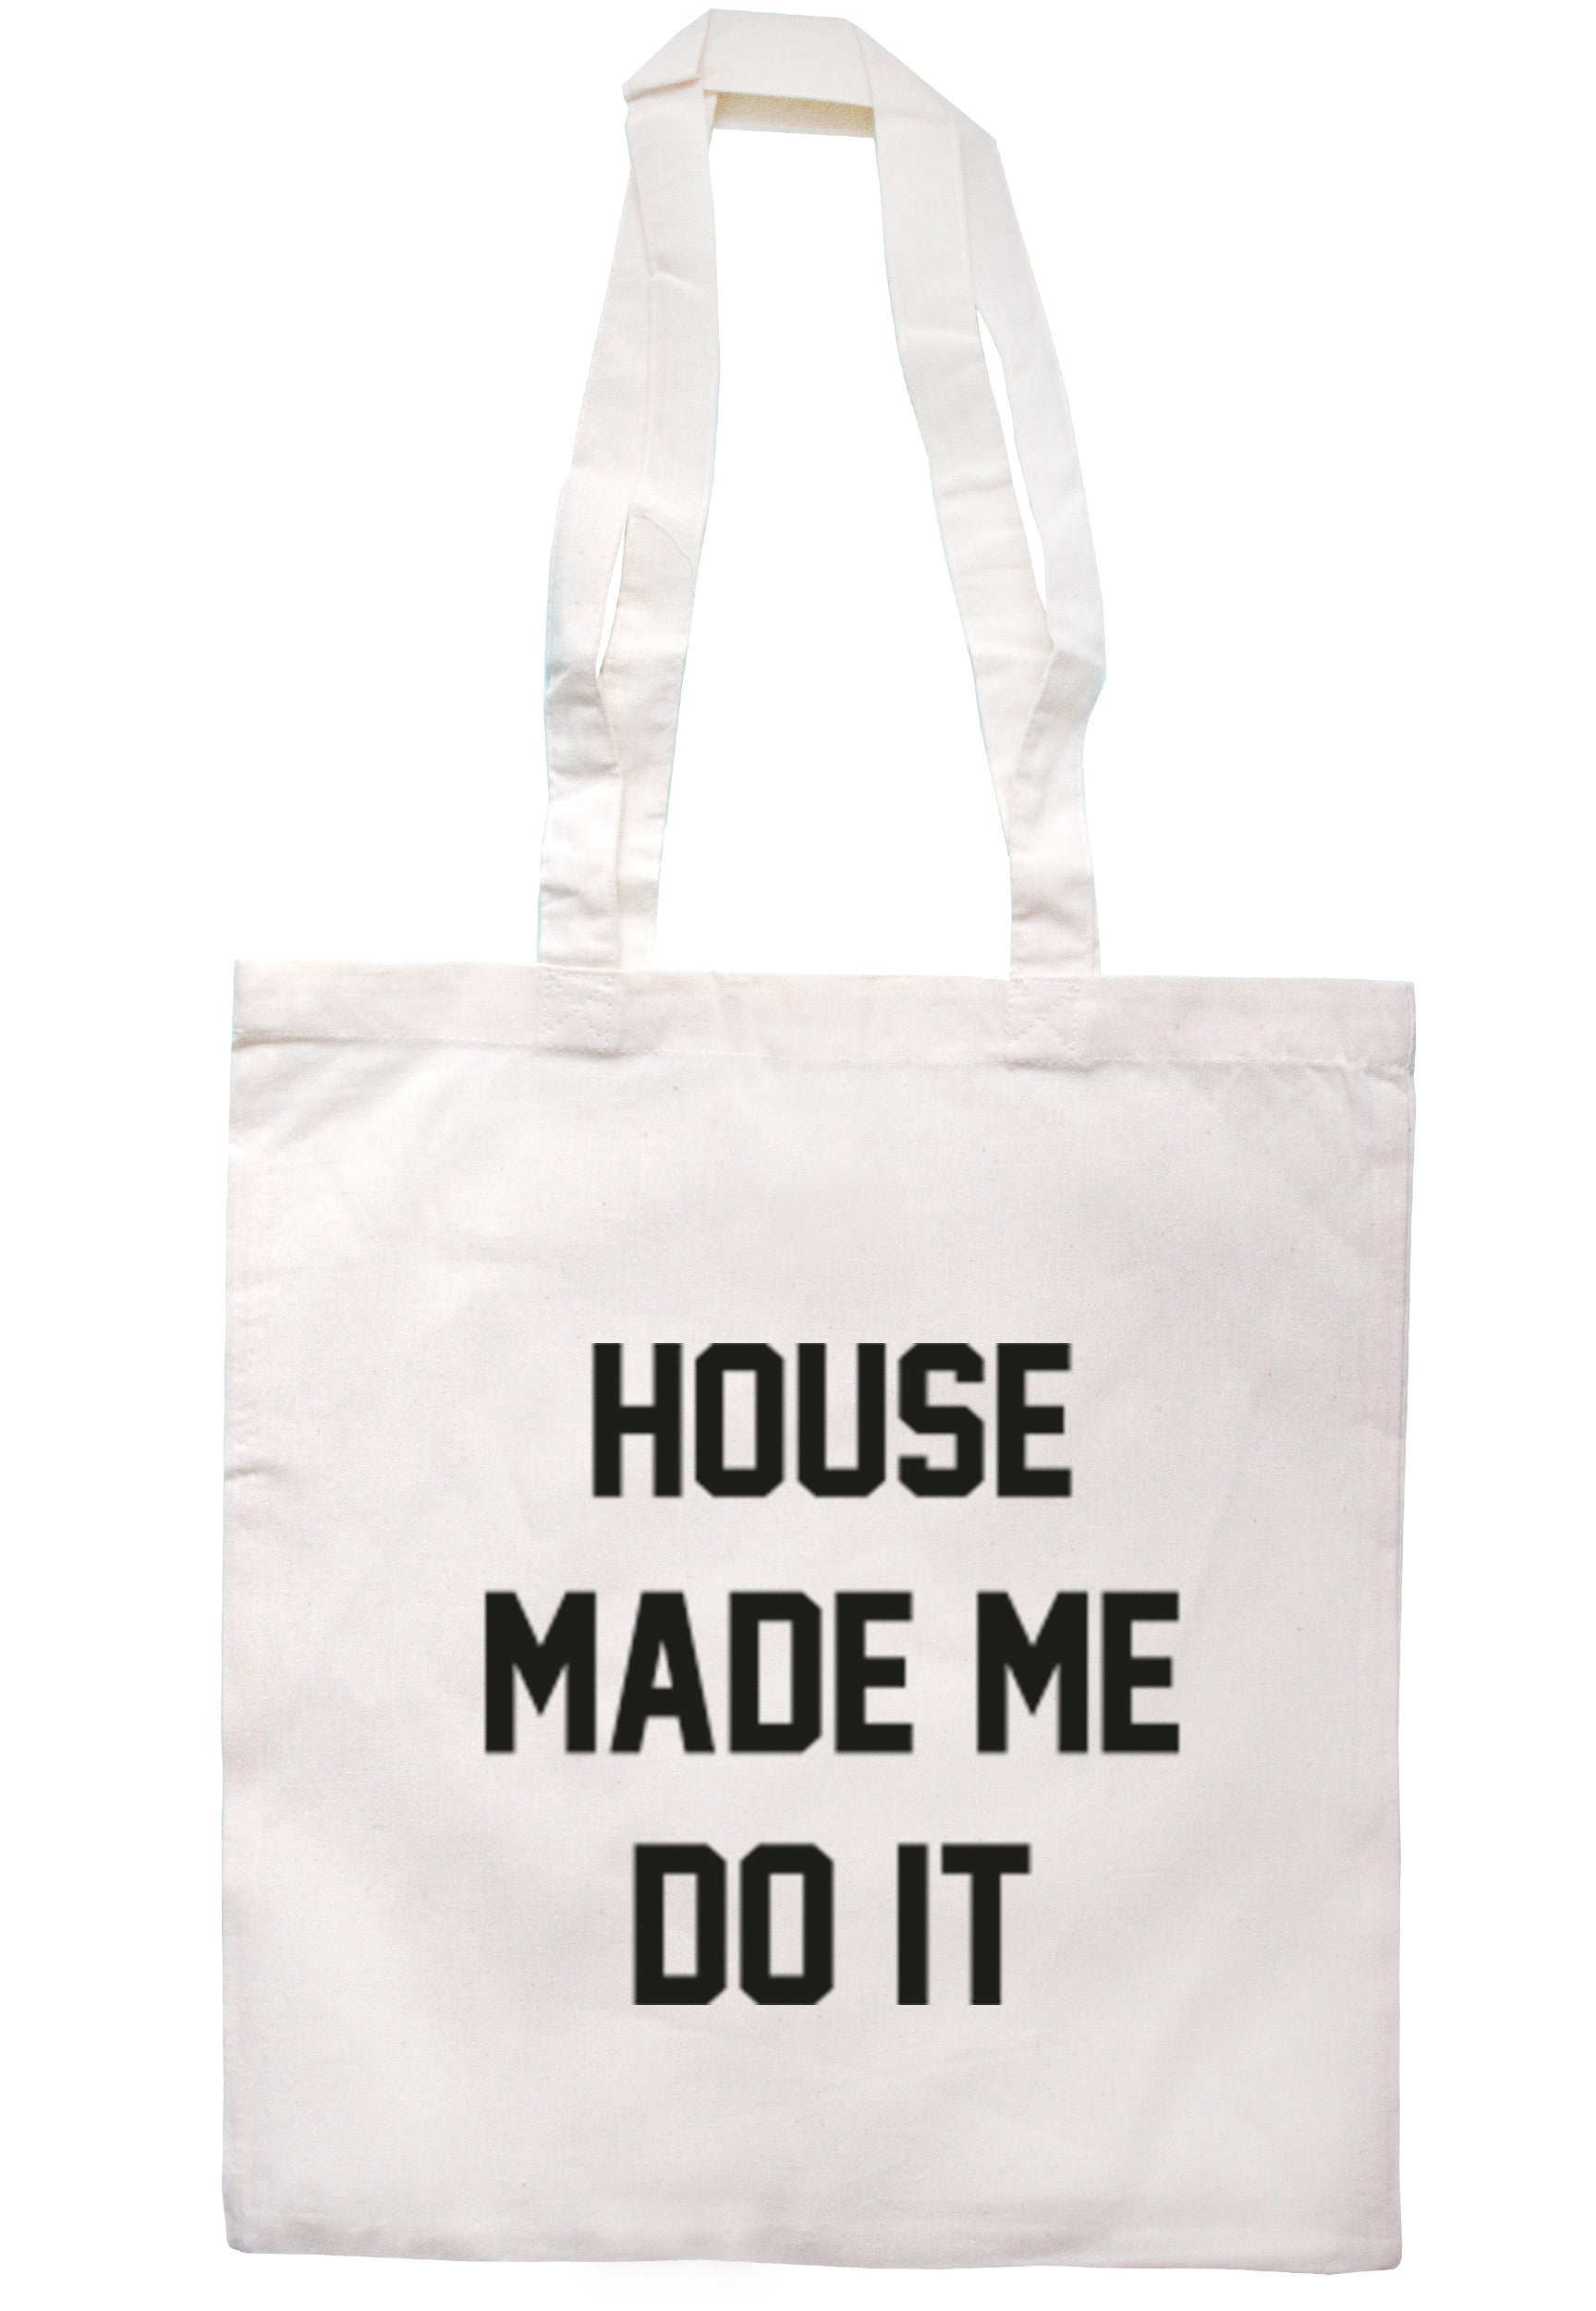 House Made Me Do It Tote Bag TB0179 - Illustrated Identity Ltd.